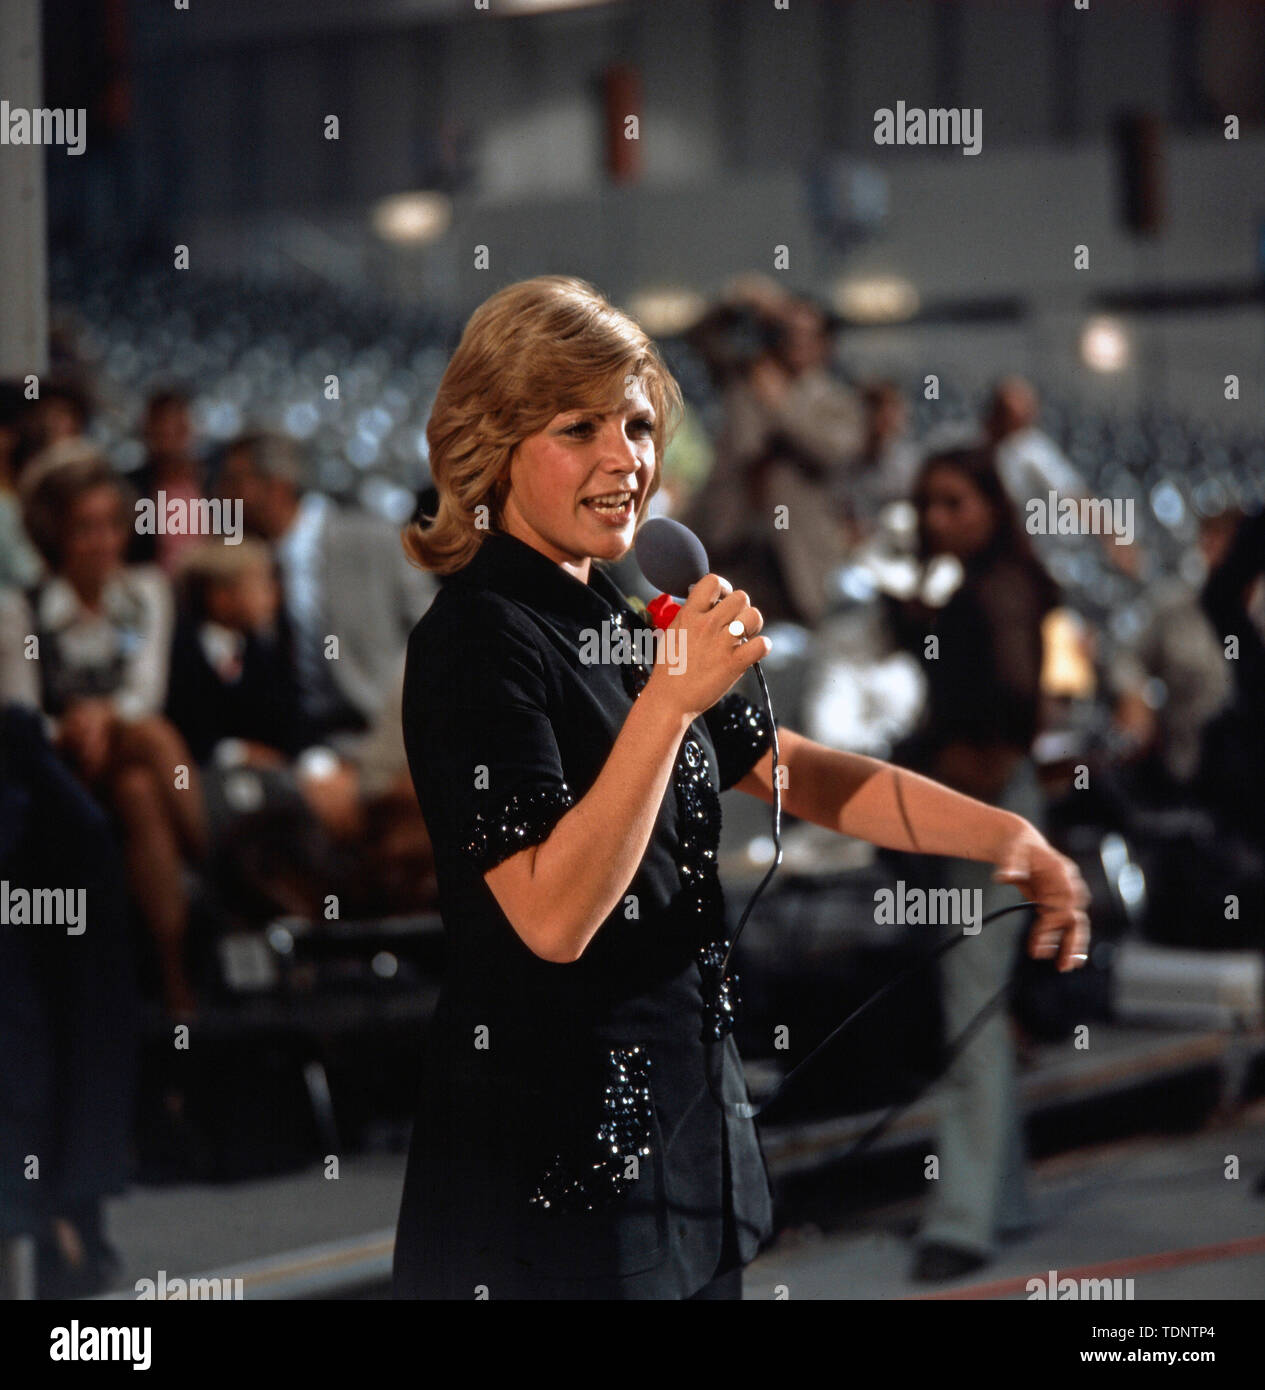 French Pop Singer Stock Photos & French Pop Singer Stock Images - Alamy